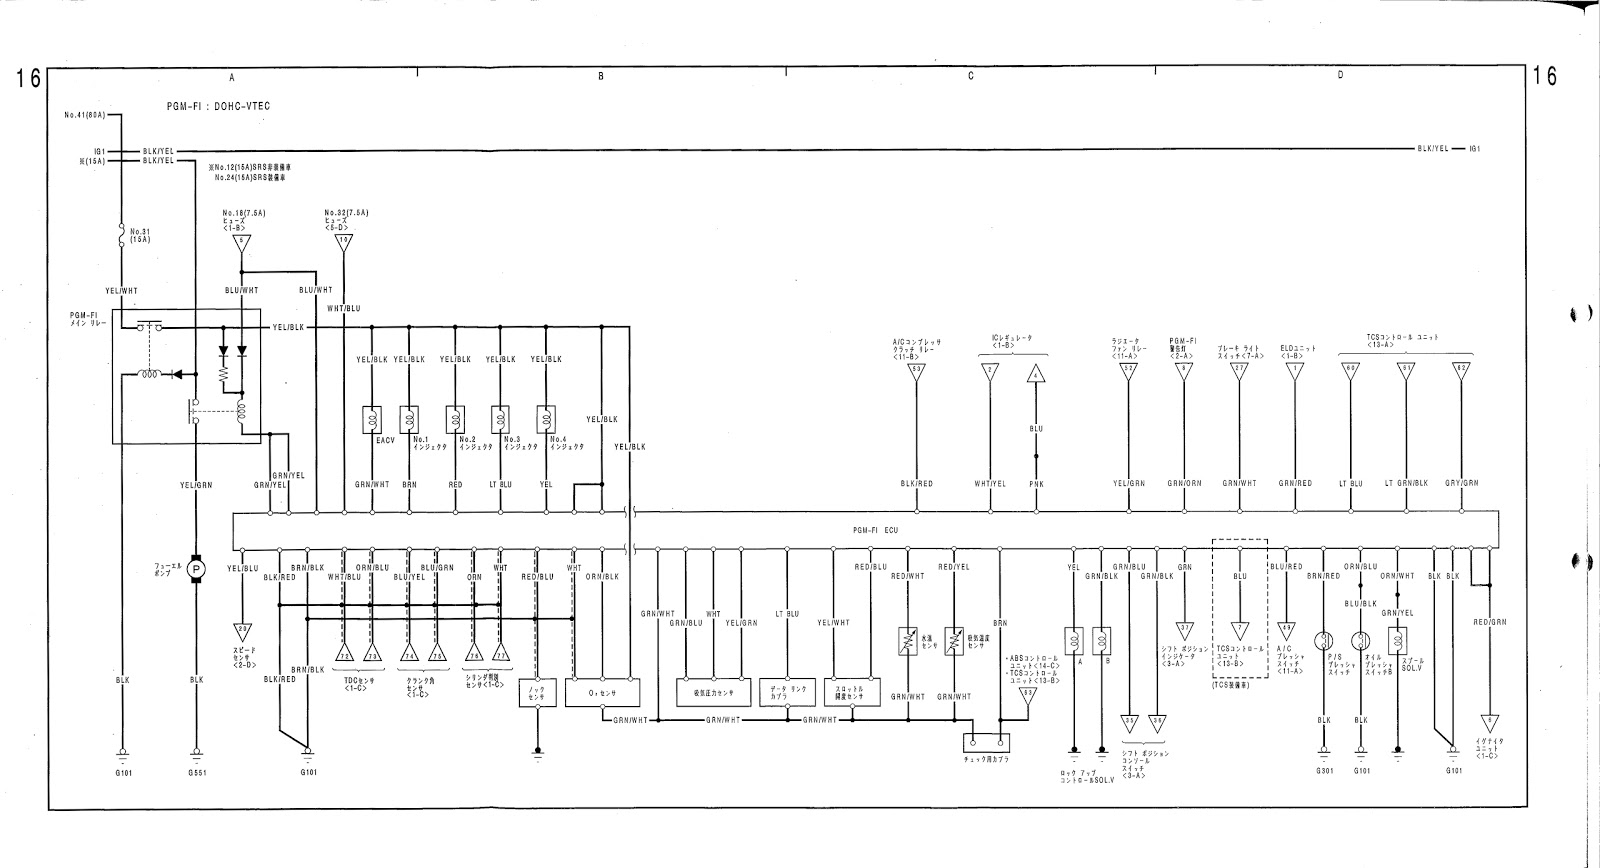 Eg Civic Wiring Diagram. Diagram. Auto Wiring Diagram